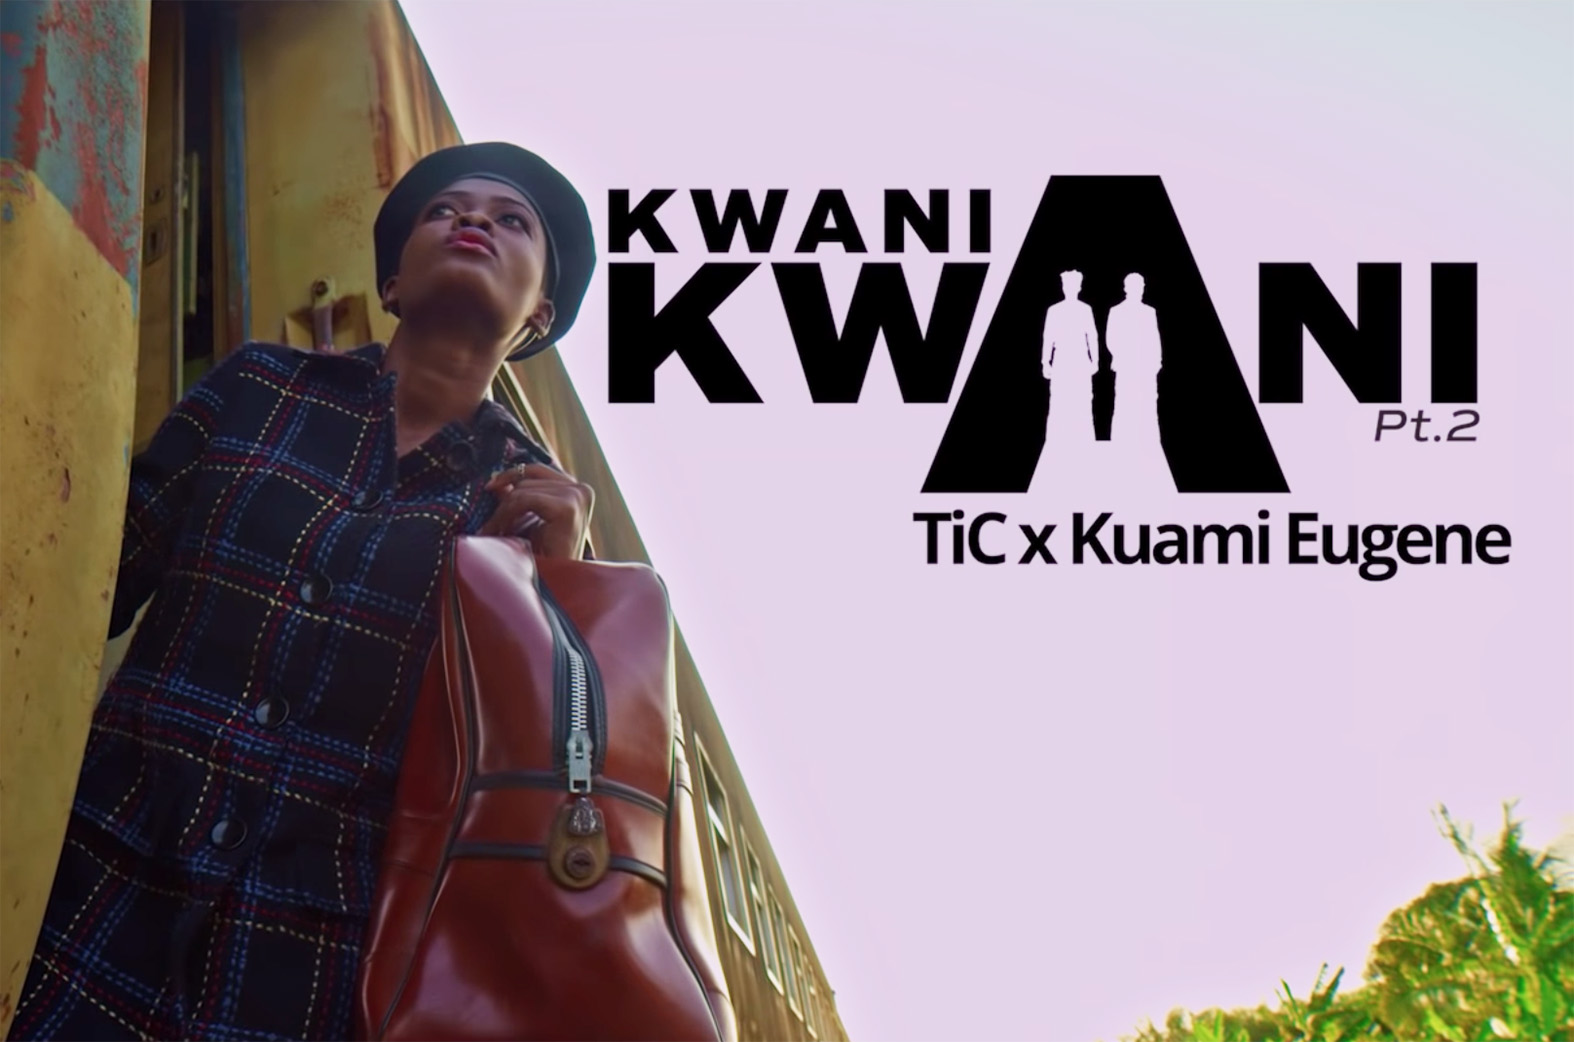 Video: Kwani Kwani Pt. 2 by Tic feat. Kuami Eugene